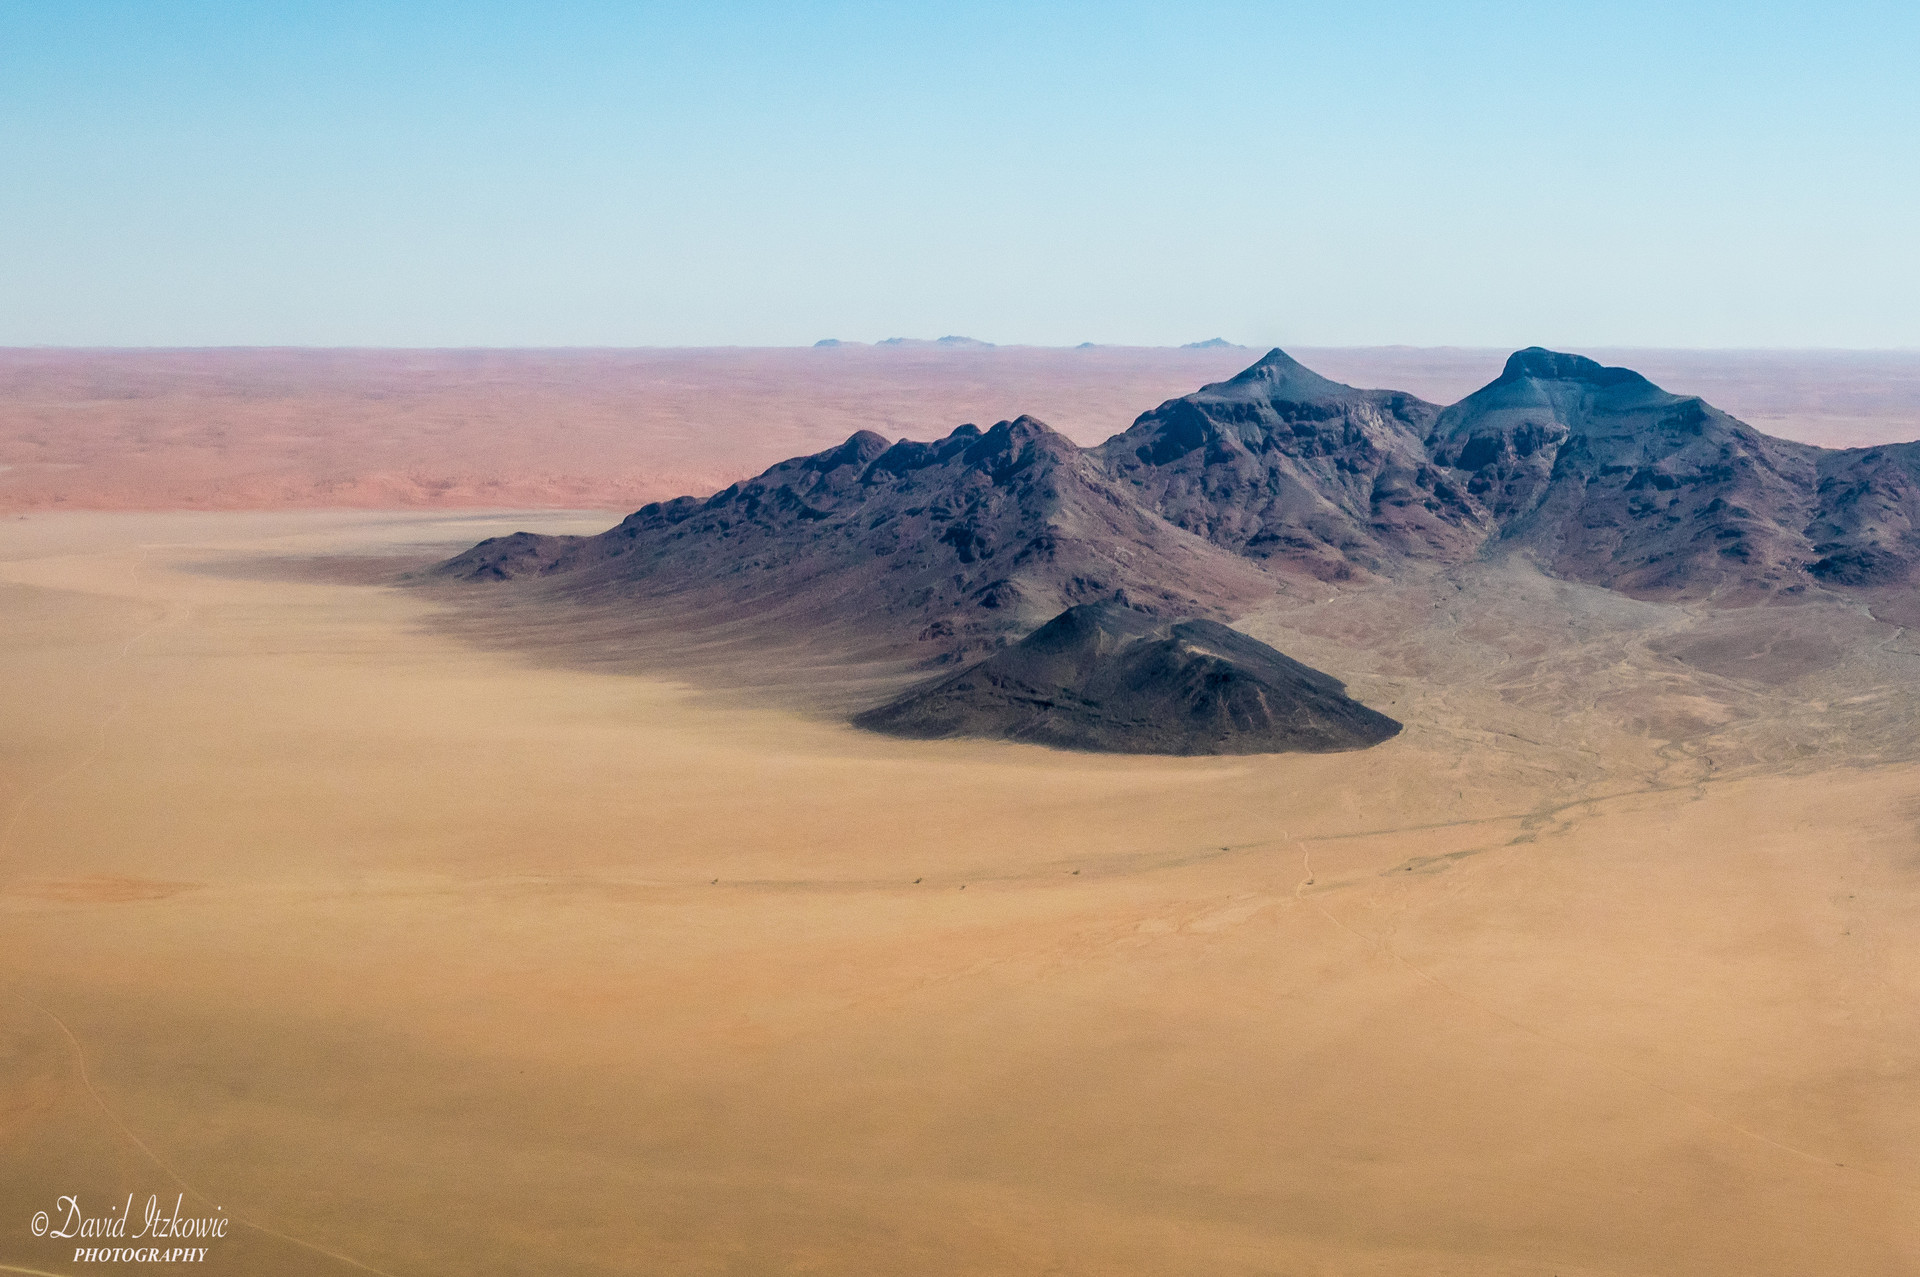 Mountains in the desert 5